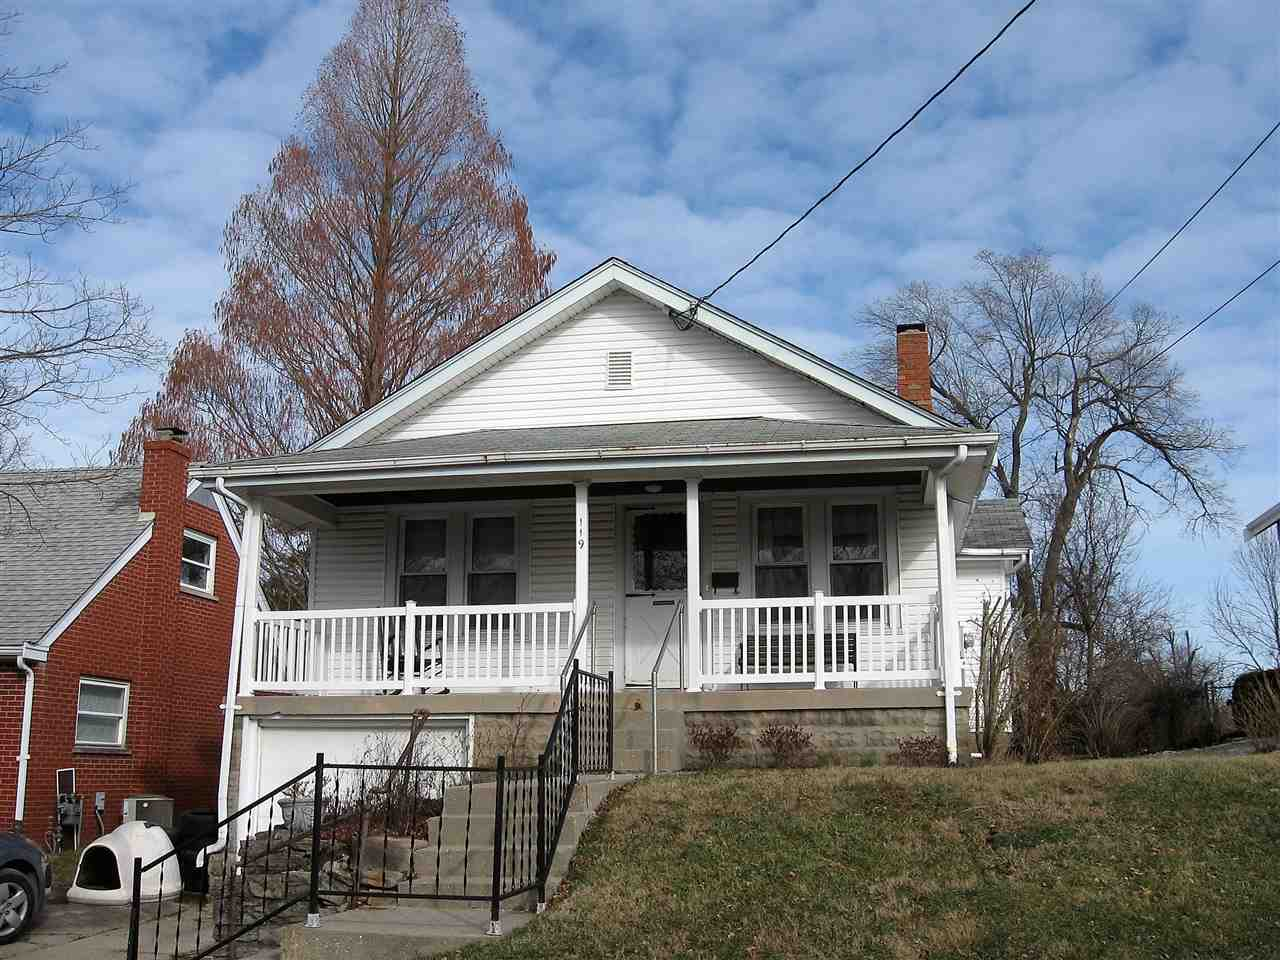 Photo of 119 Crestwood  Highland Heights  KY